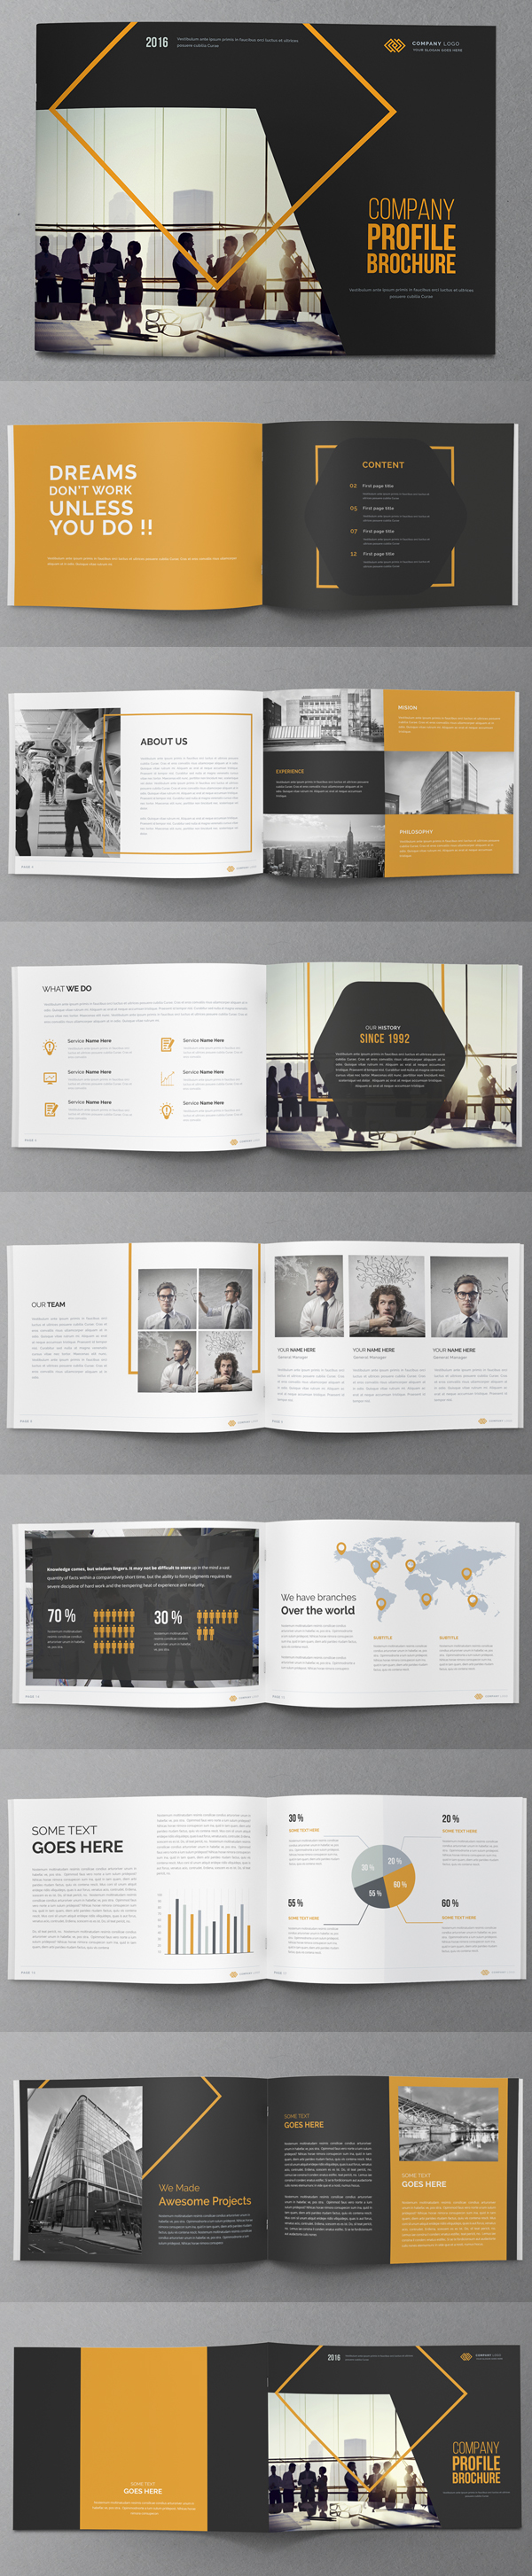 Creative Annual Report Brochure Design